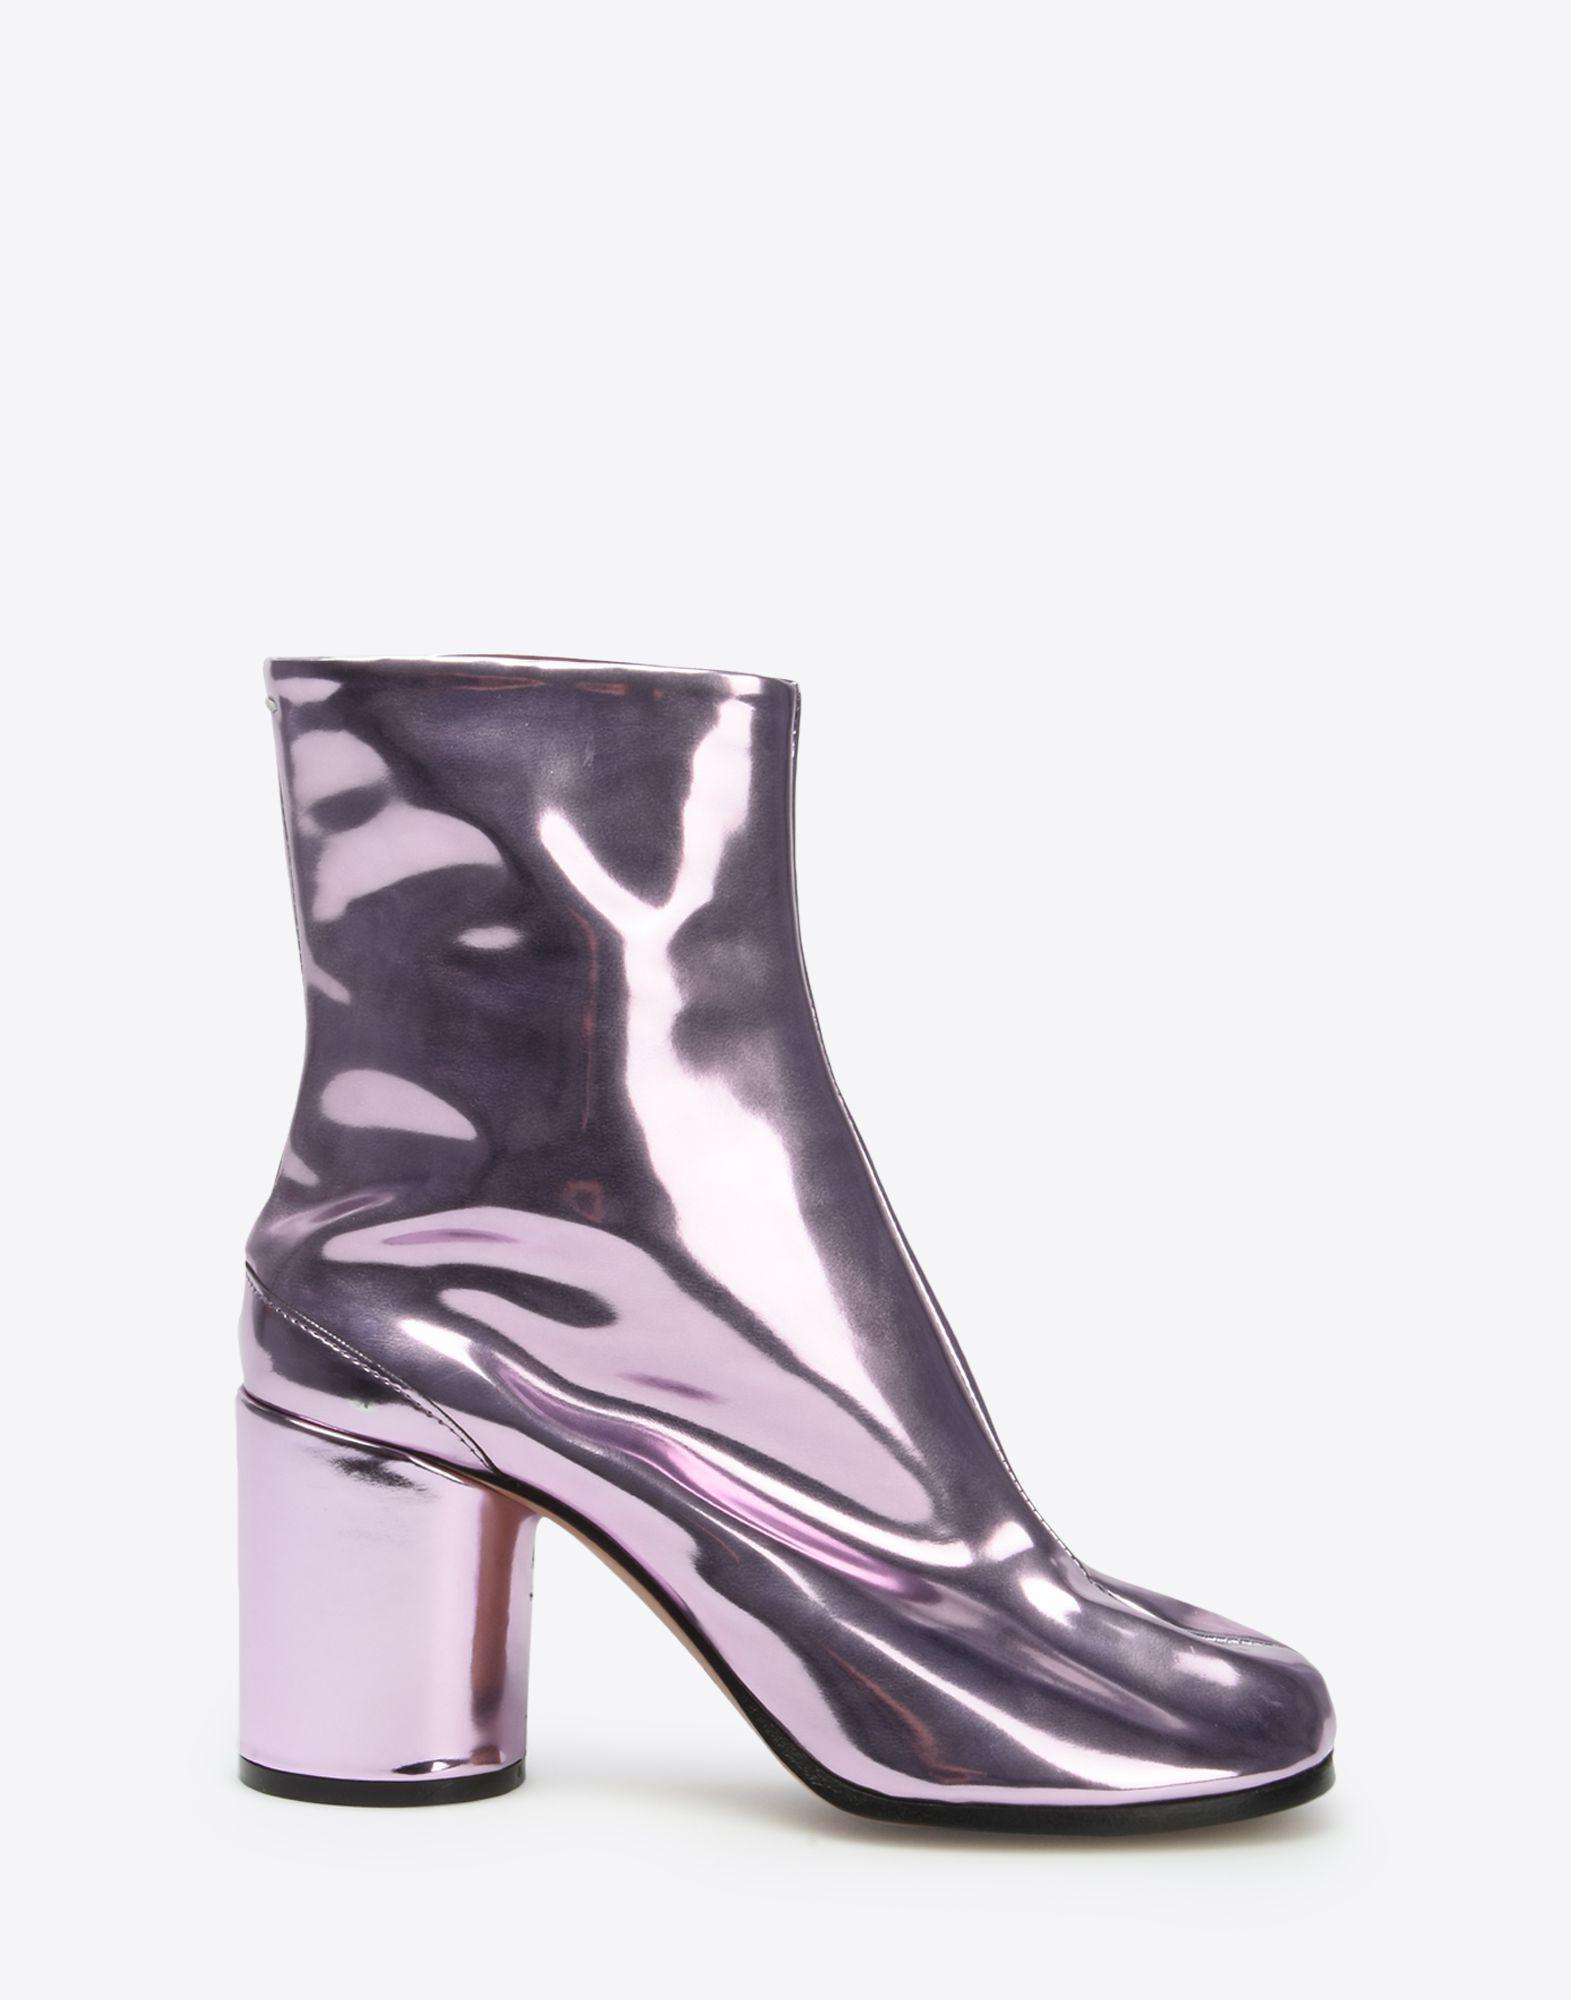 Tabi boots - Metallic Maison Martin Margiela Low Shipping Cheap Price Free Shipping Many Kinds Of Cheap Sale Amazing Price Buy Cheap For Cheap RljJx0nV